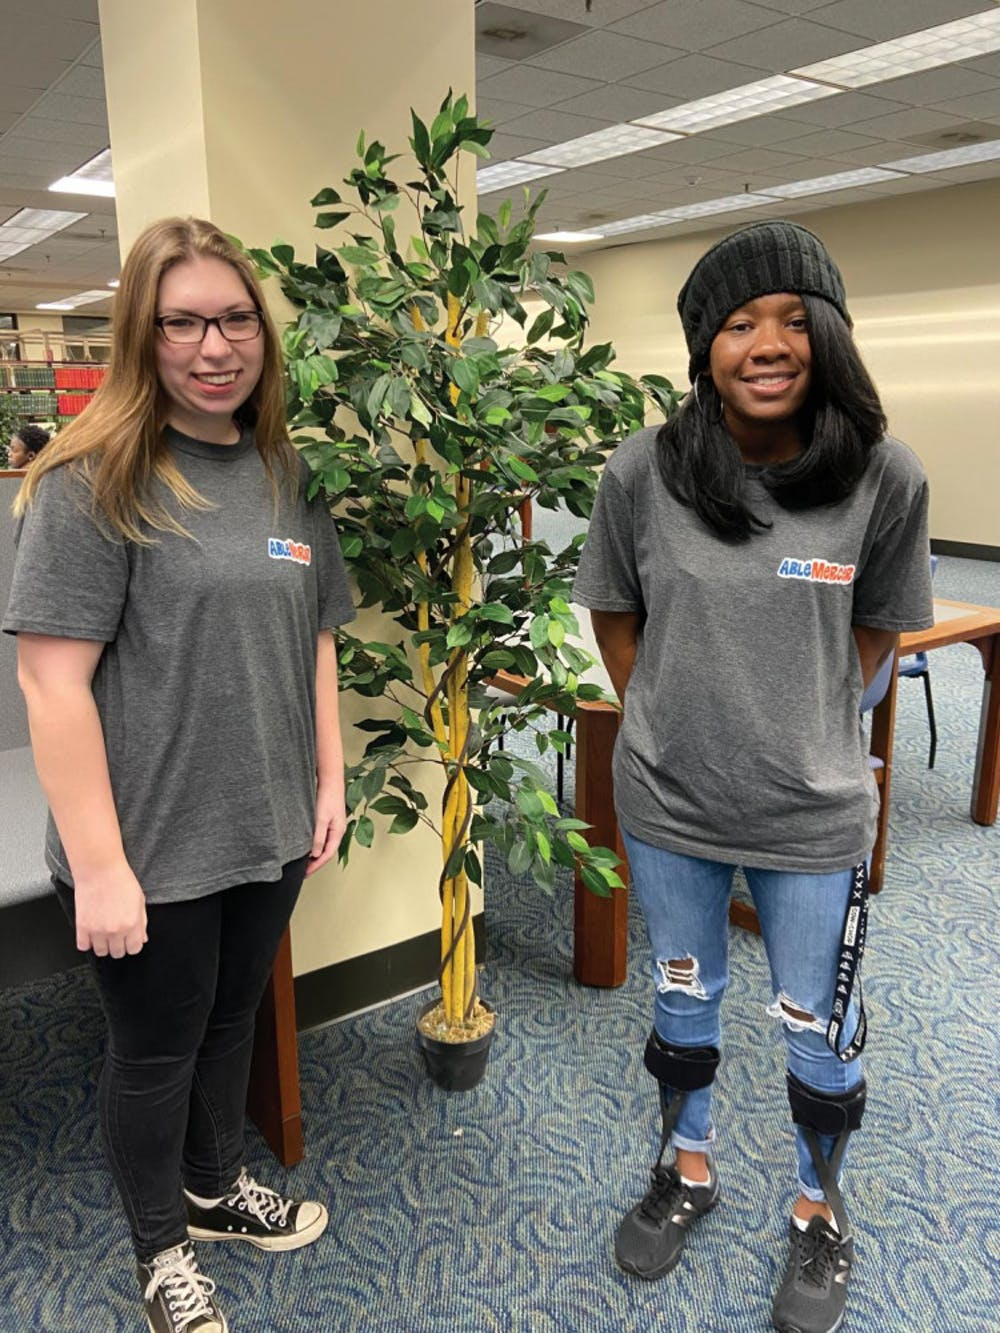 Sarah Carter (left) and Ashley Pettway (right) are co-presidents of ABLE Mercer, a club dedicated to advocating and advising students with disabilities on Mercer's campus.